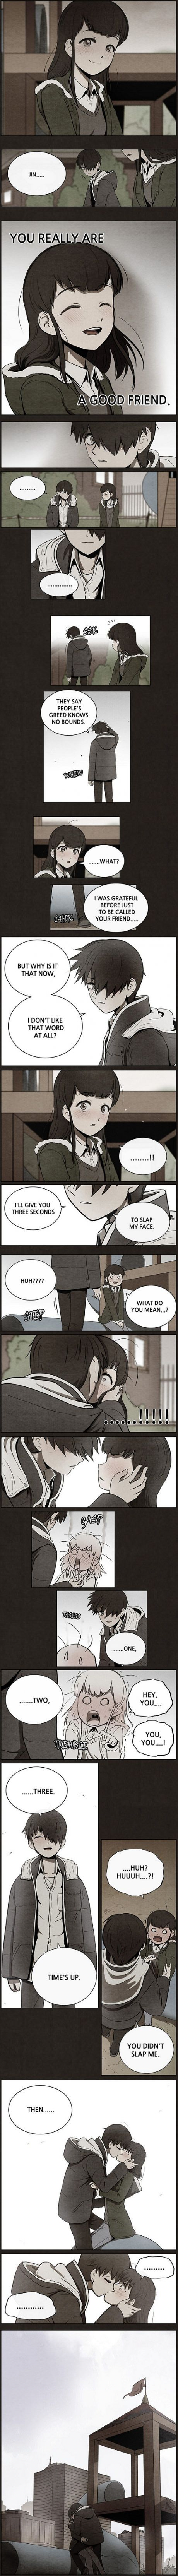 OKAY NOPE THIS SCENE MAY BE FINE BUT IVE READ THE FULL COMIC AND JESUS CHRIST IT FUCKED ME UP REAL BAD. You can find it on webtoons, its called Bastard